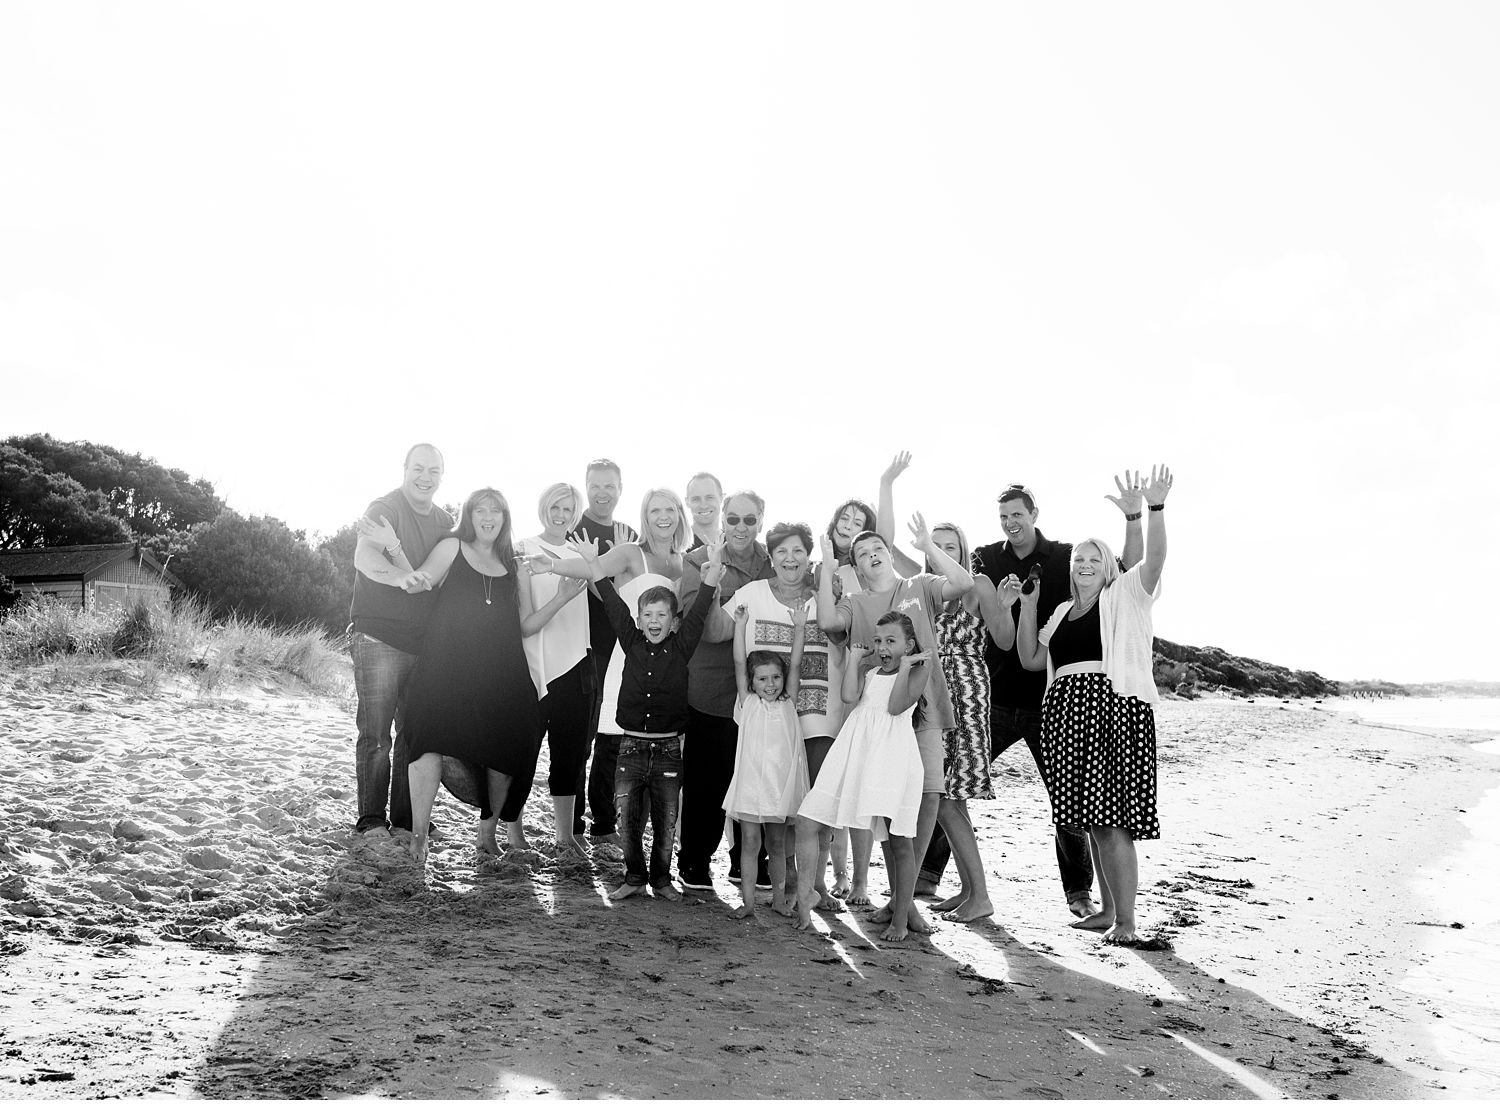 bec-stewart-photography-extended-family-photography-session-melbourne-australia-city-of-casey-22.jpg